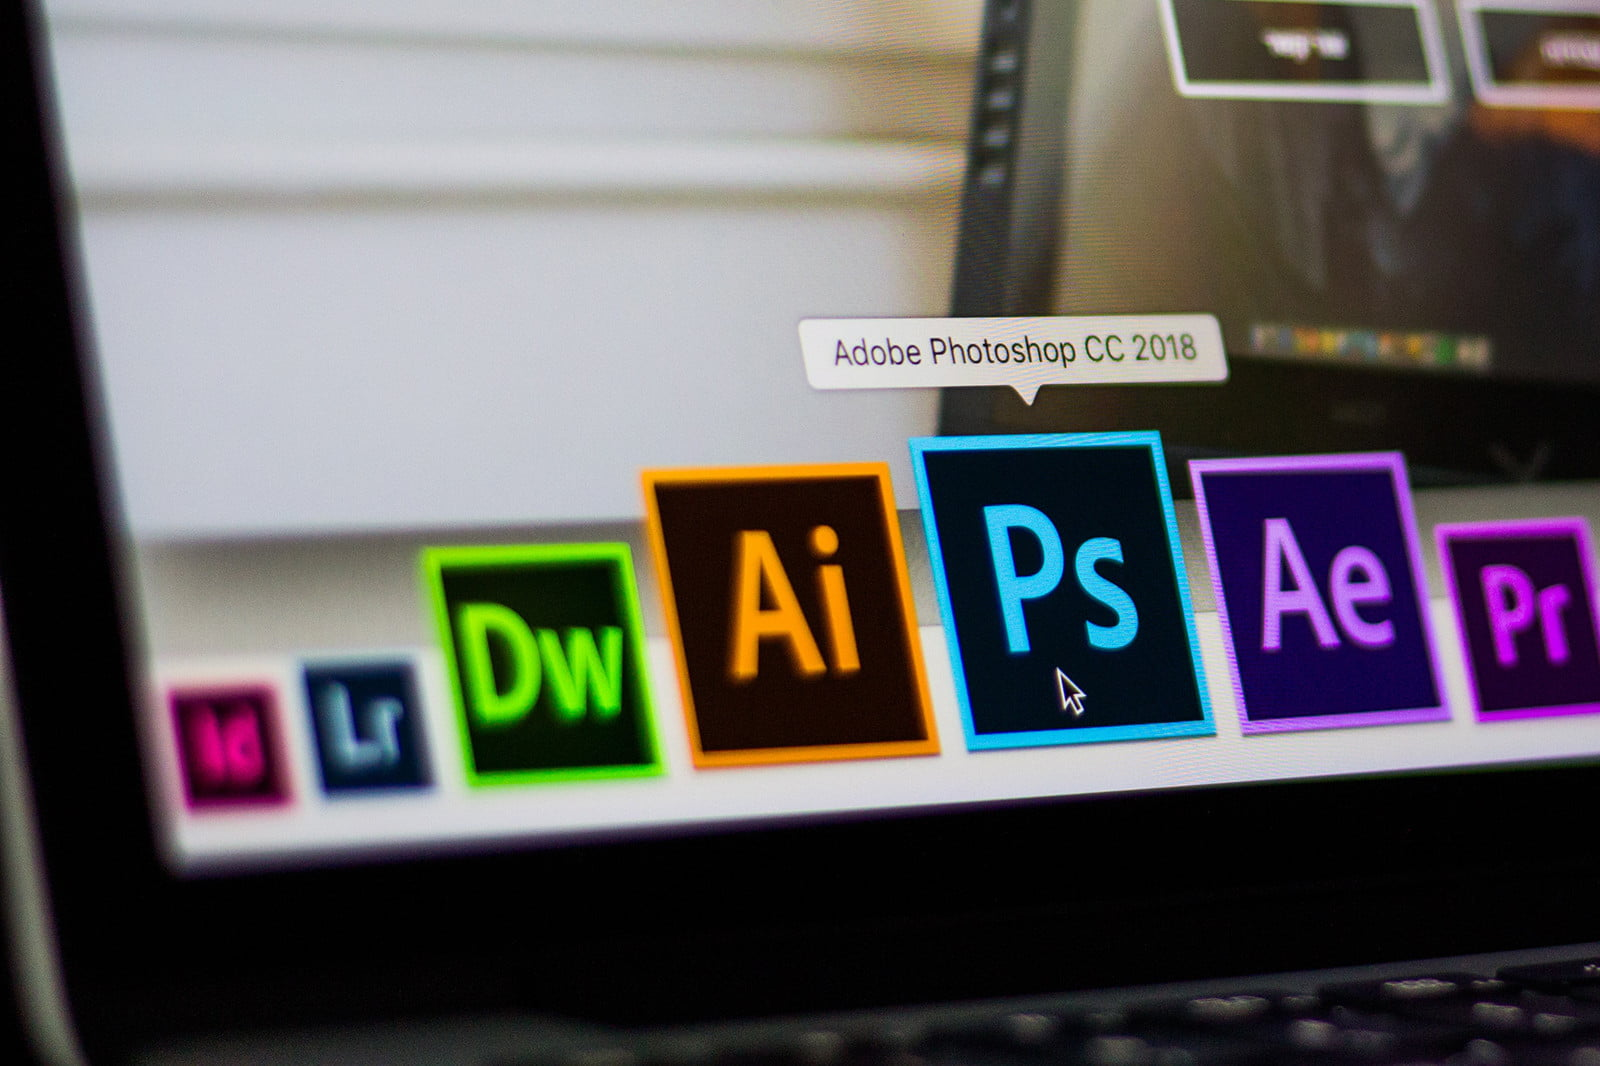 Photoshop's Content-Aware Fill is about to get even smarter with auto selections